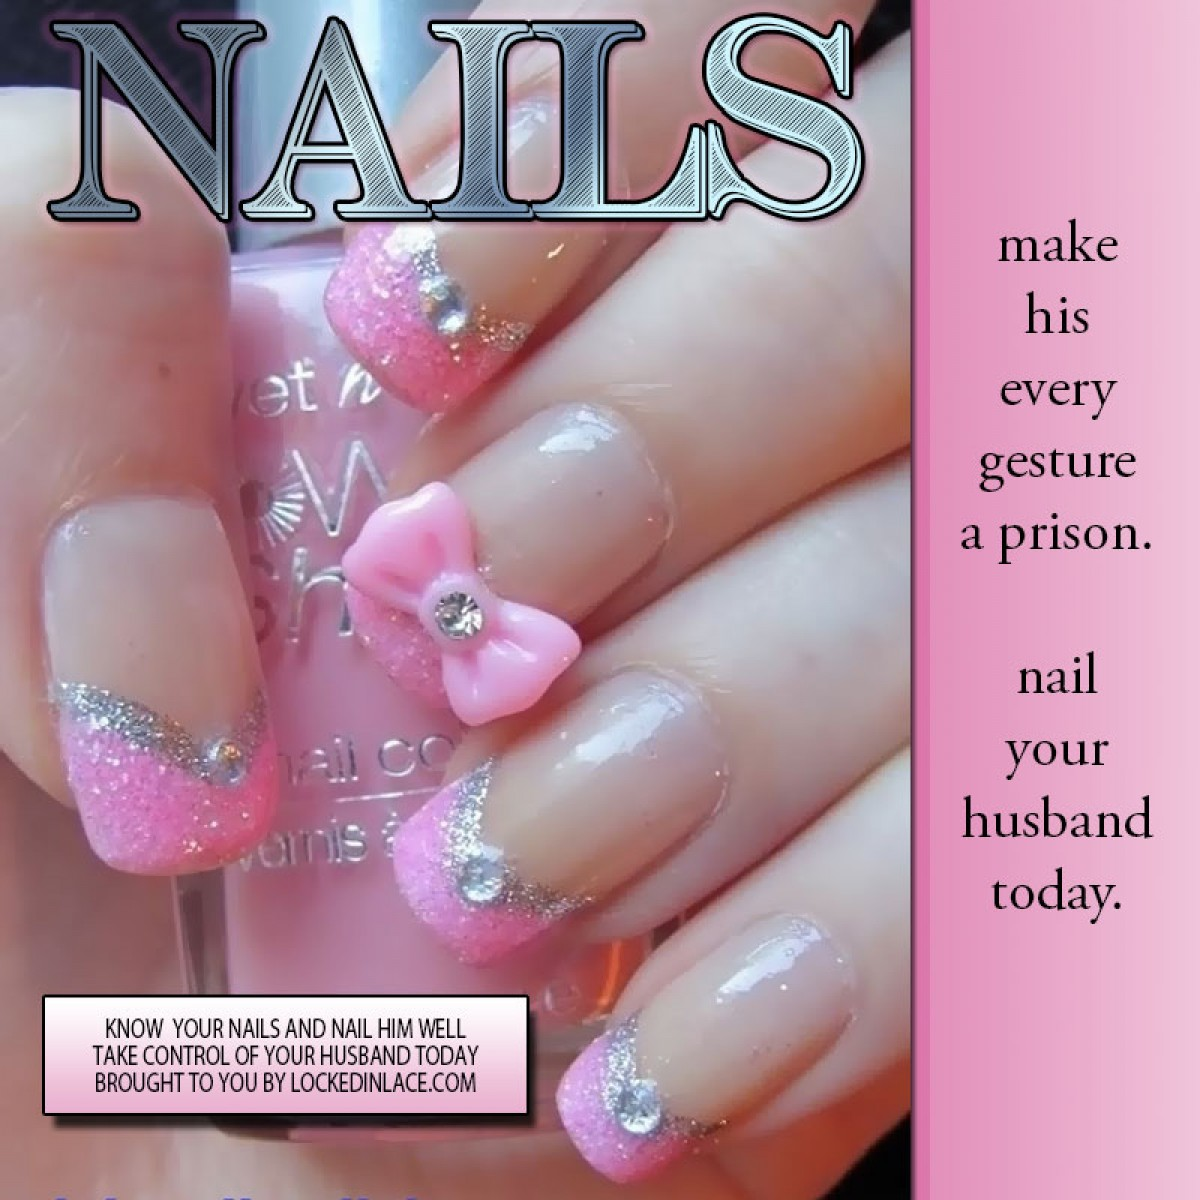 Nails - Nail him Well